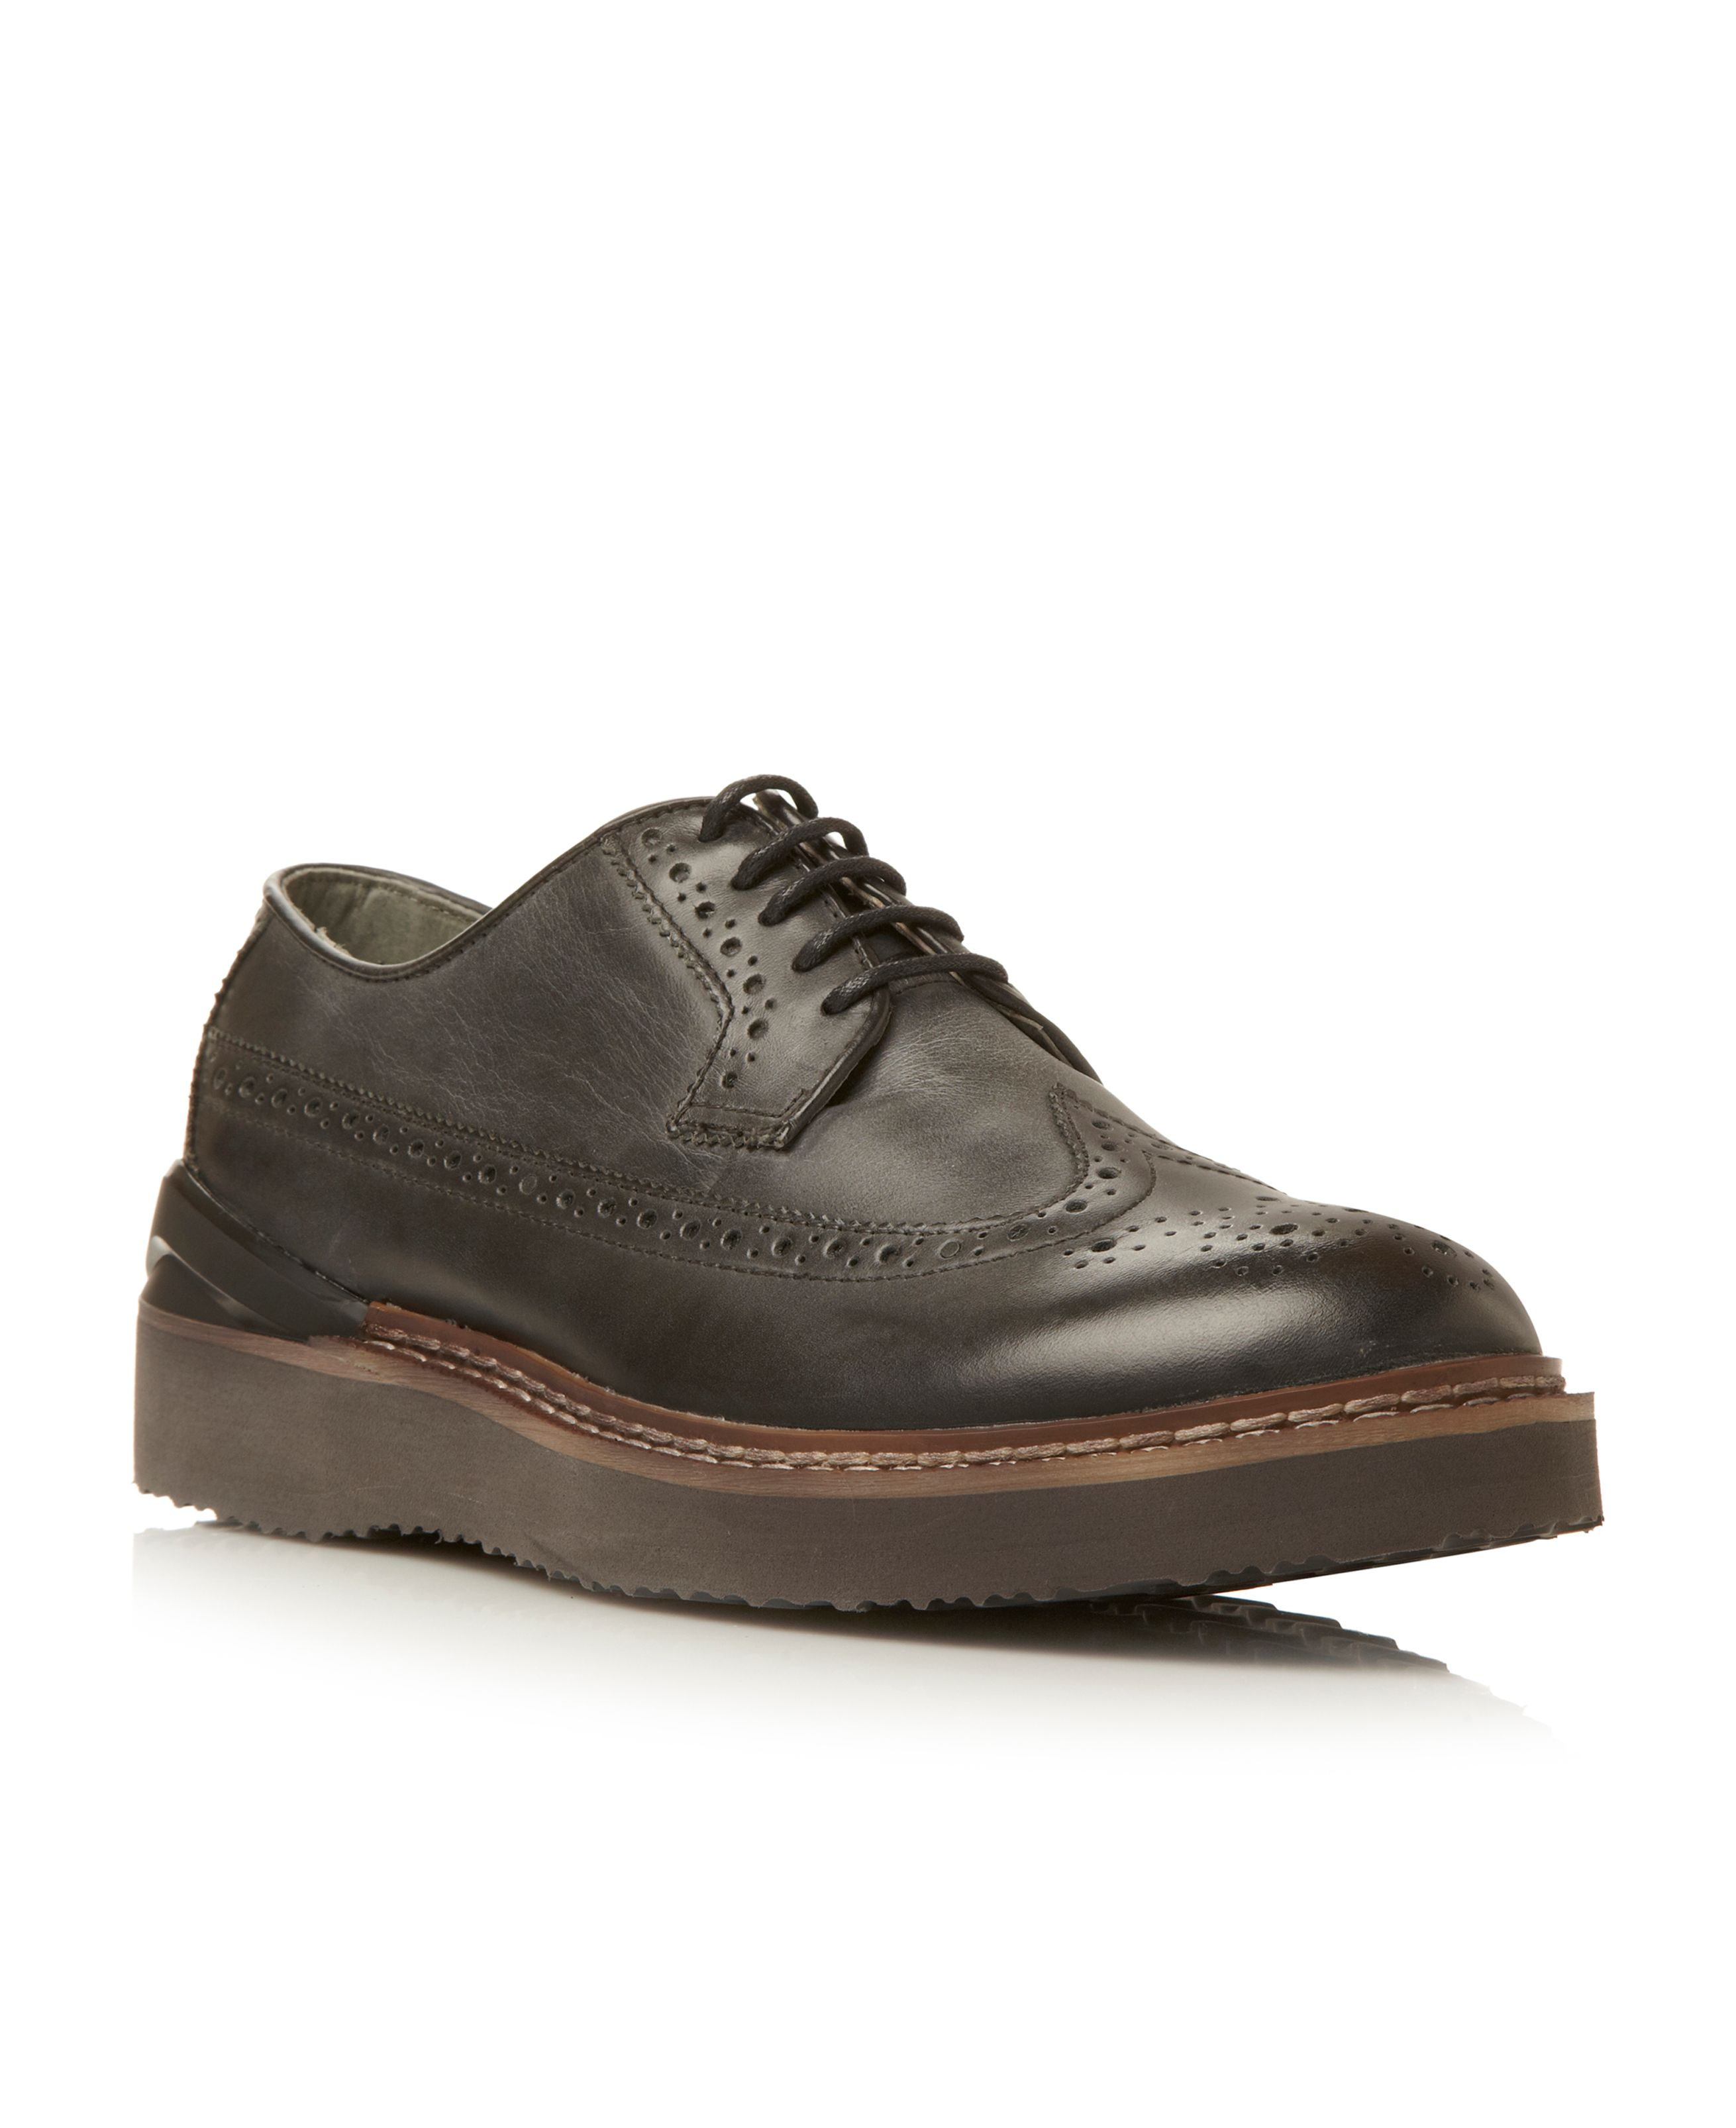 Cachet heavy sport wedge brogue